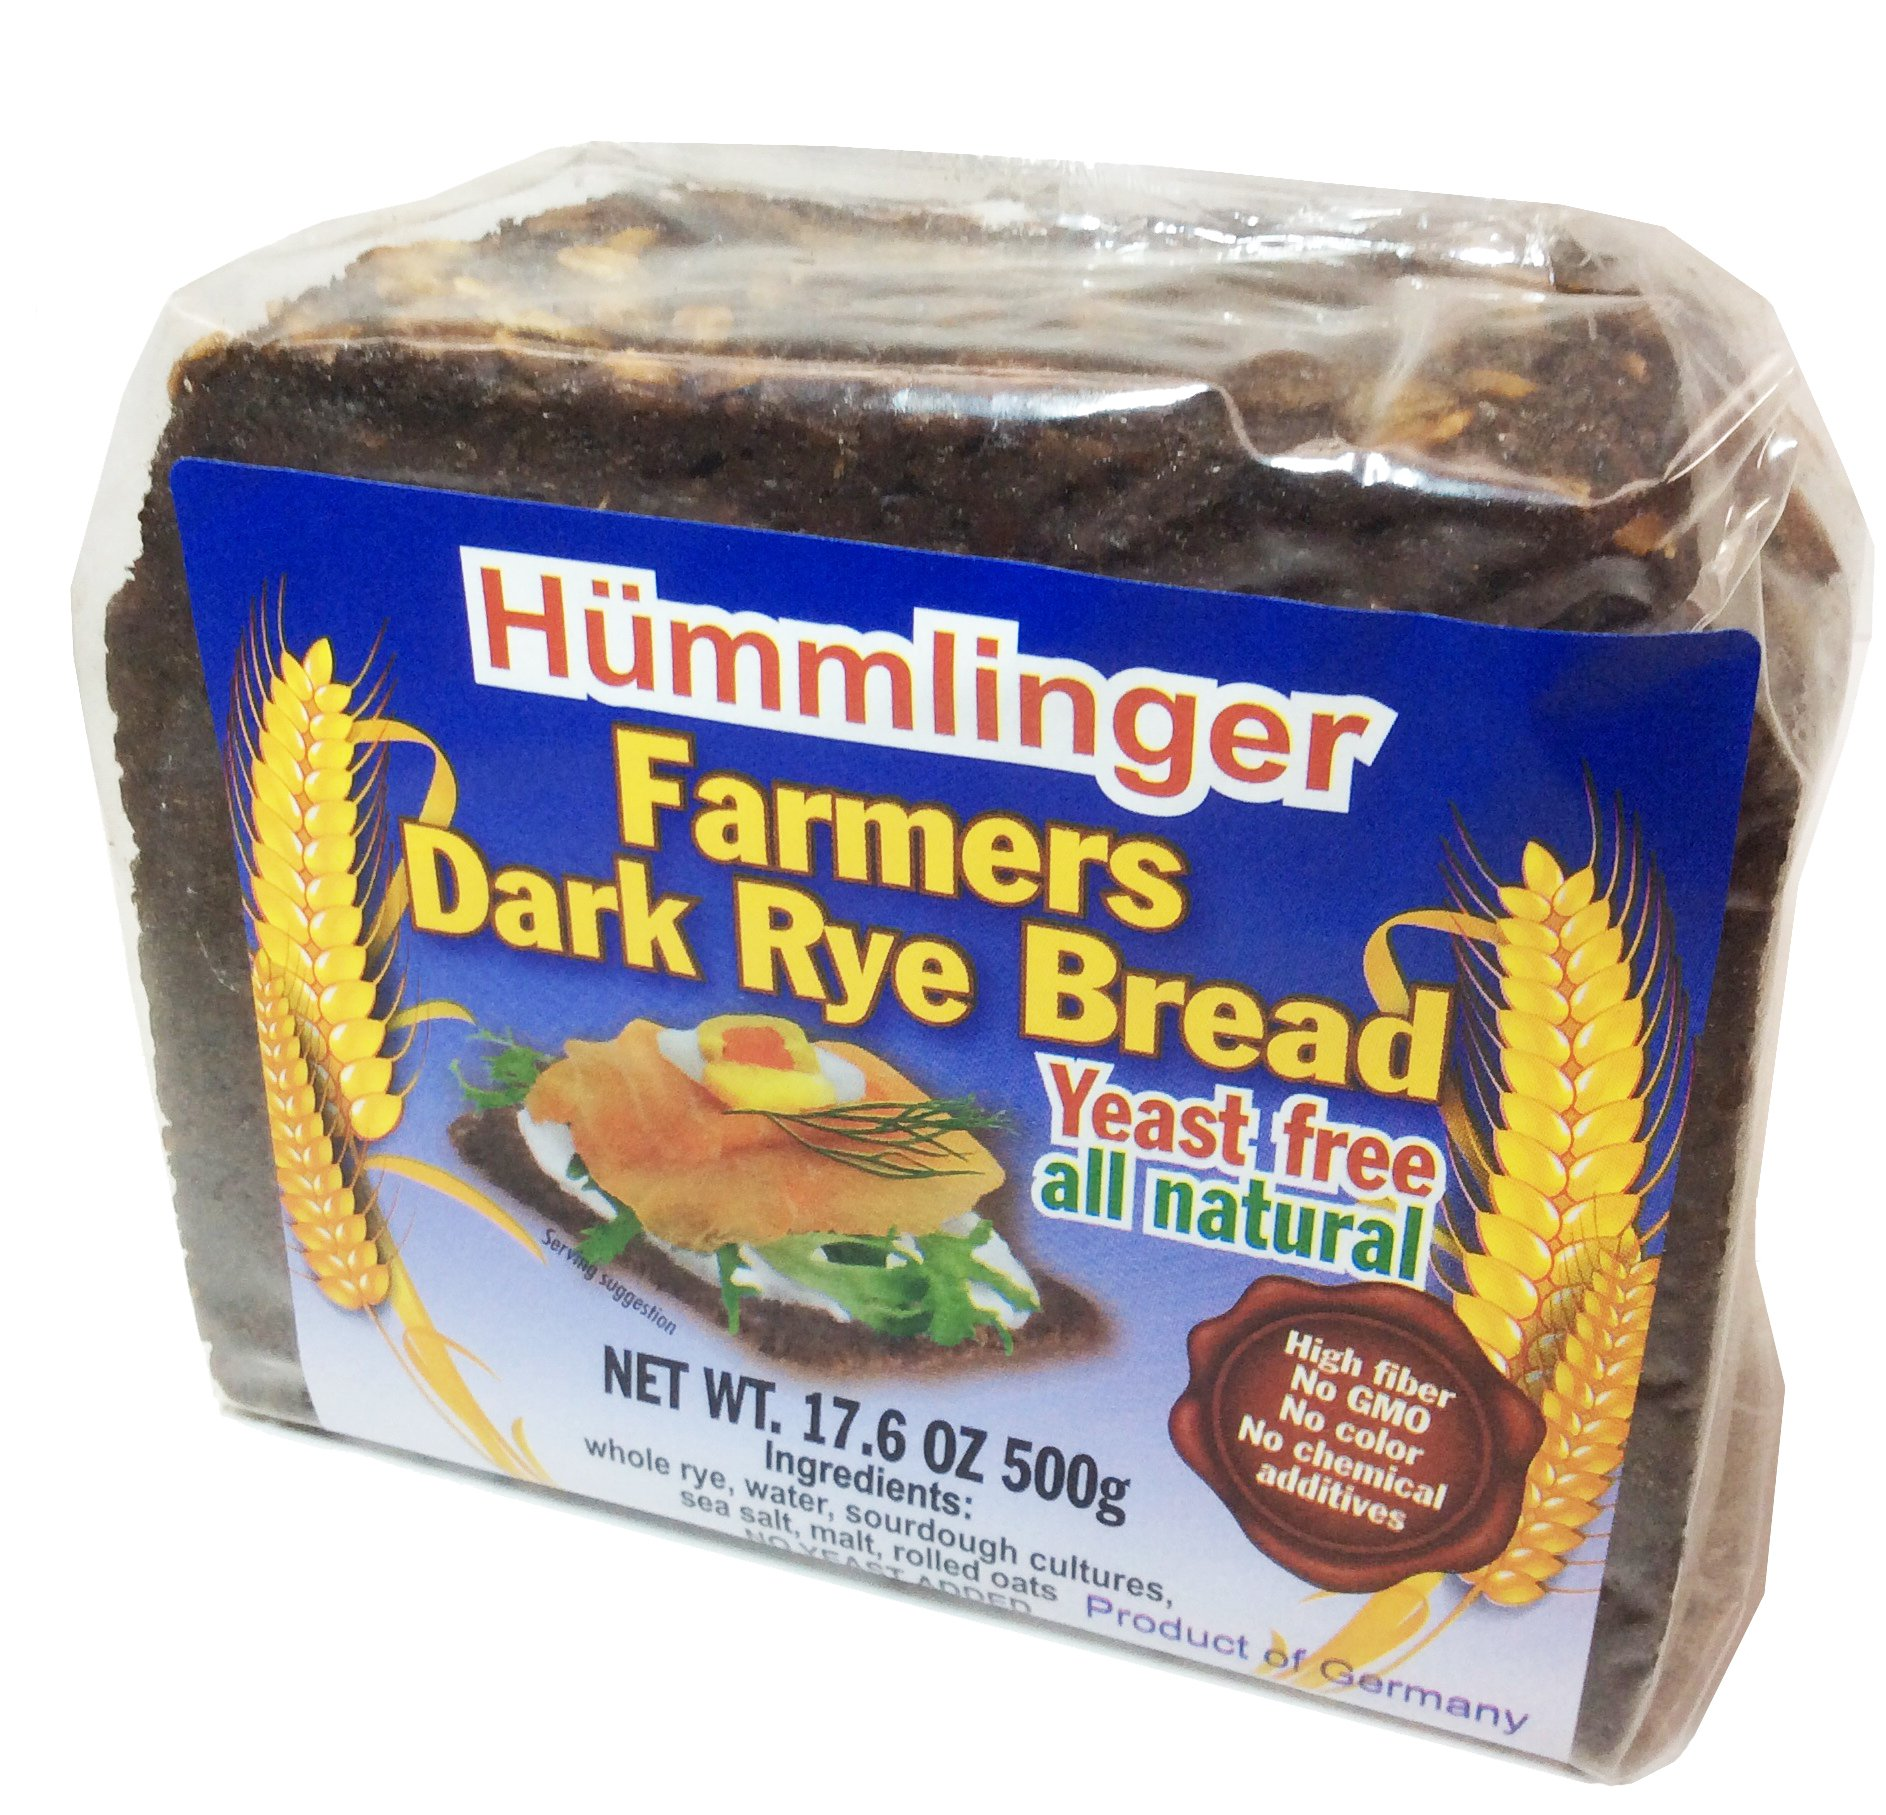 Hummlinger Yeast Free Bread, Farmers Dark Rye,GMO FREE 17.6 oz (6 packs)